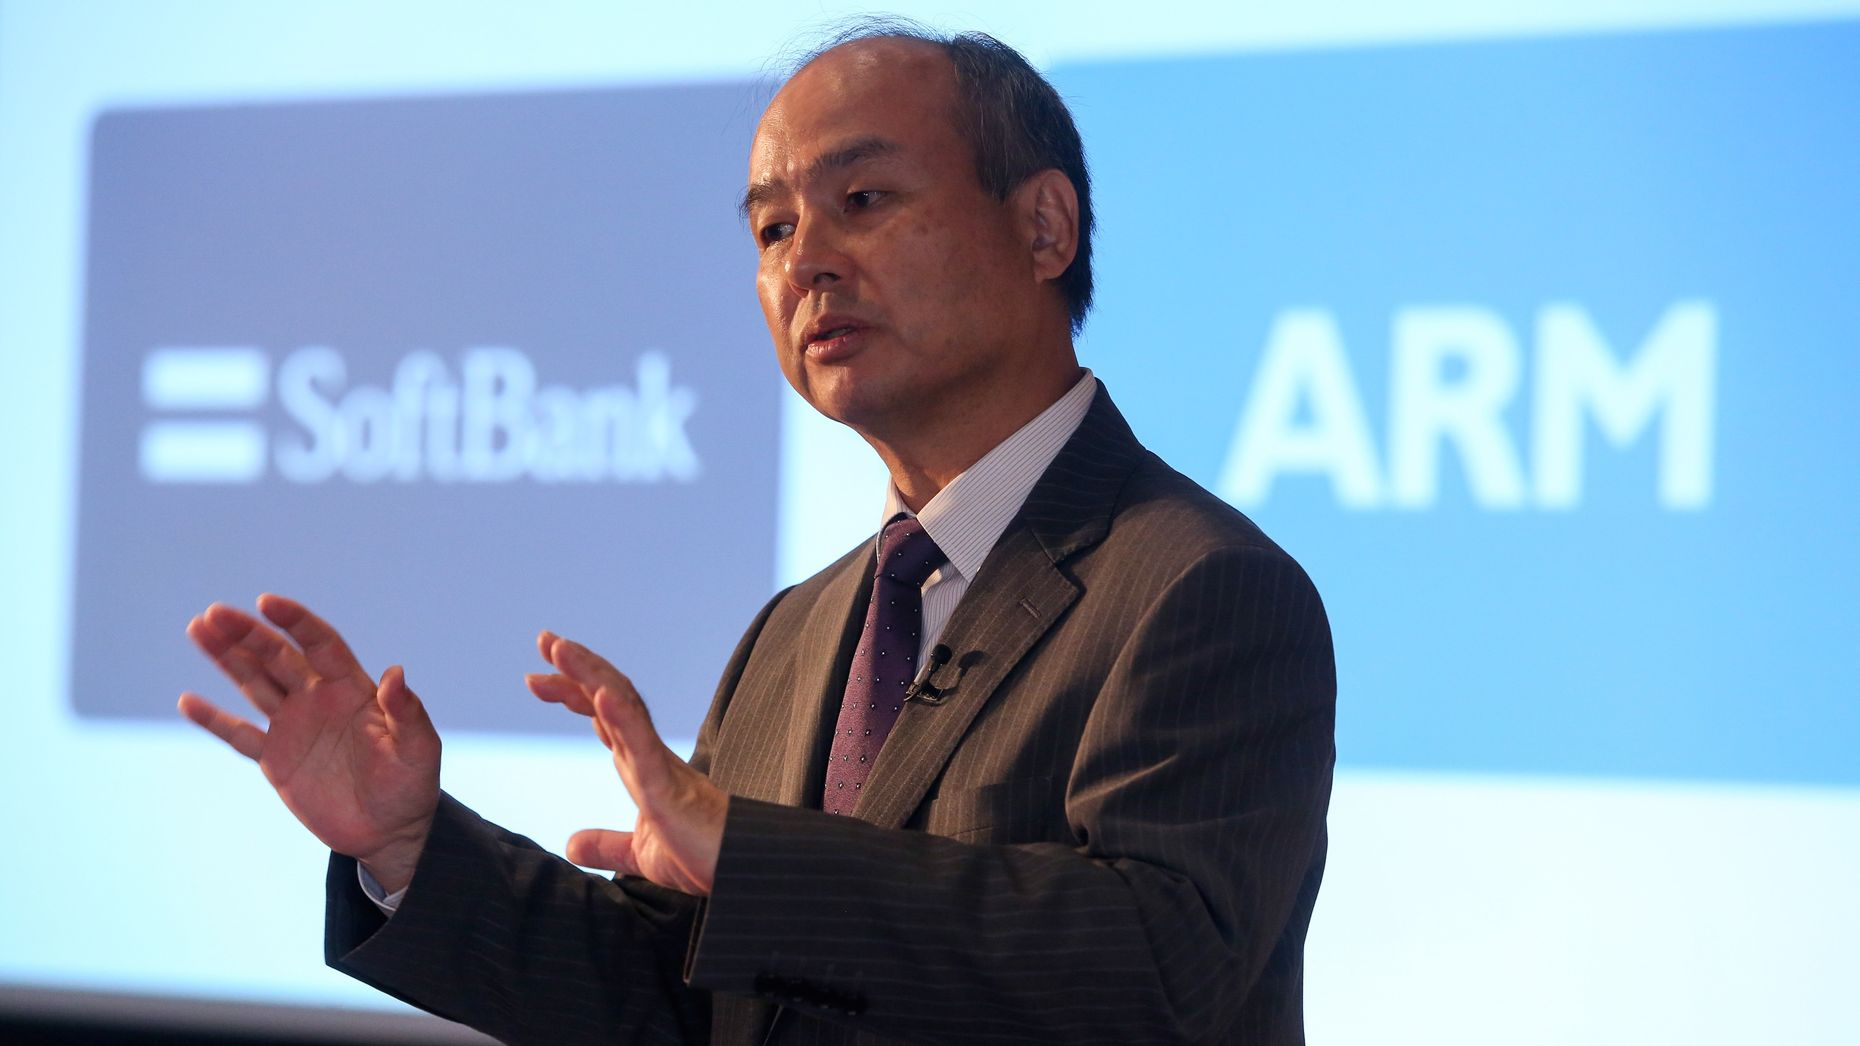 SoftBank Group Chairman Masayoshi Son announcing SoftBank's purchase of ARM Holdings this month. Photo by Bloomberg.